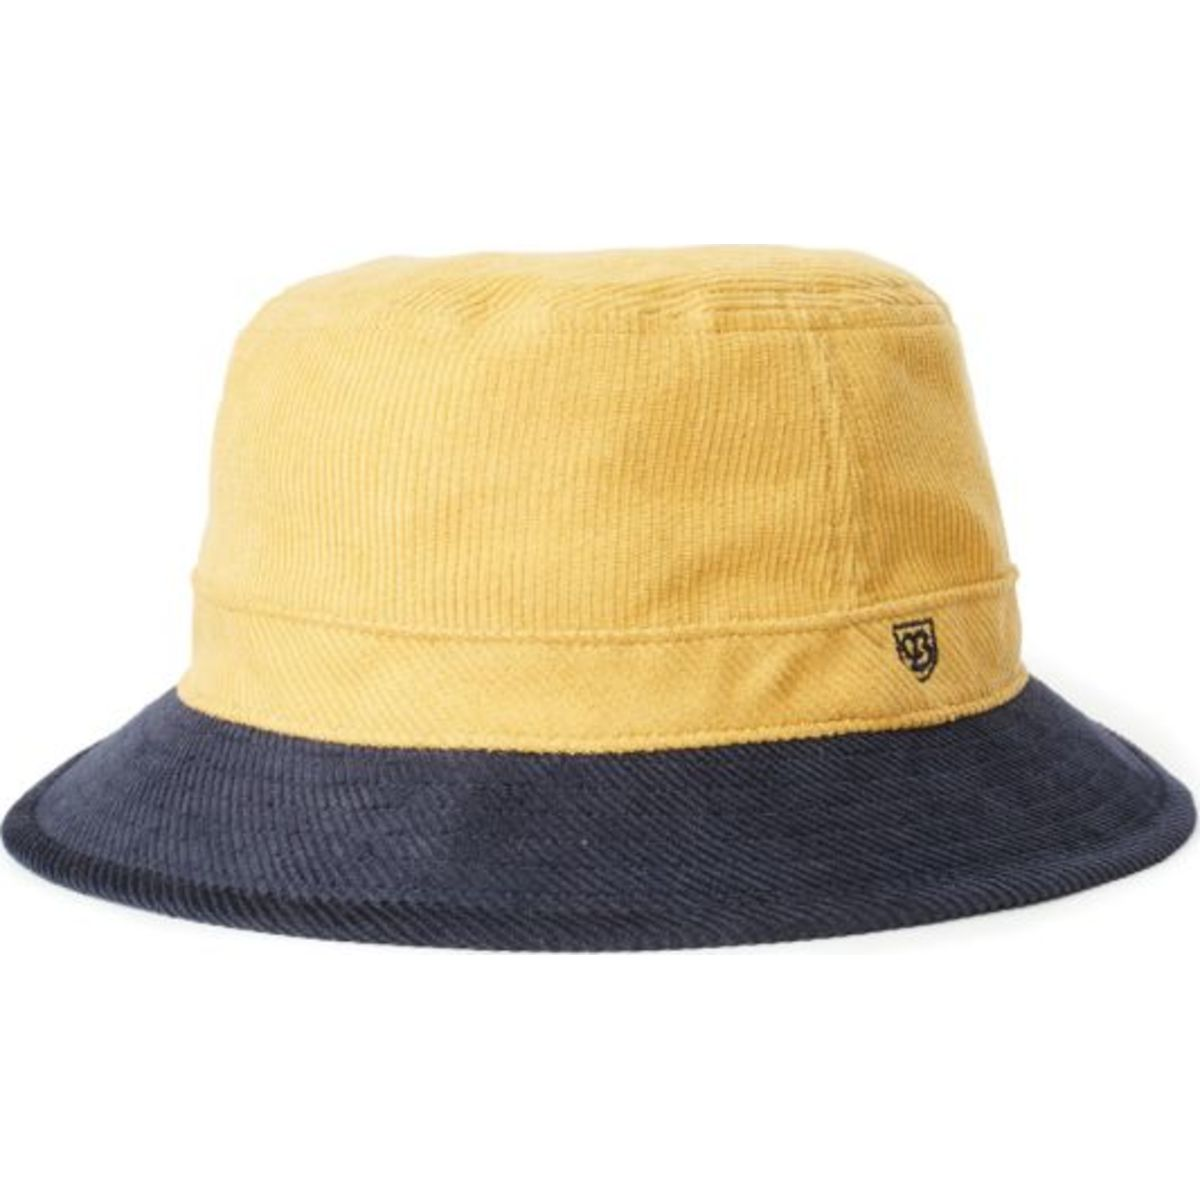 B-Shield Bucket Hat - Sunset Yellow/Washed Navy